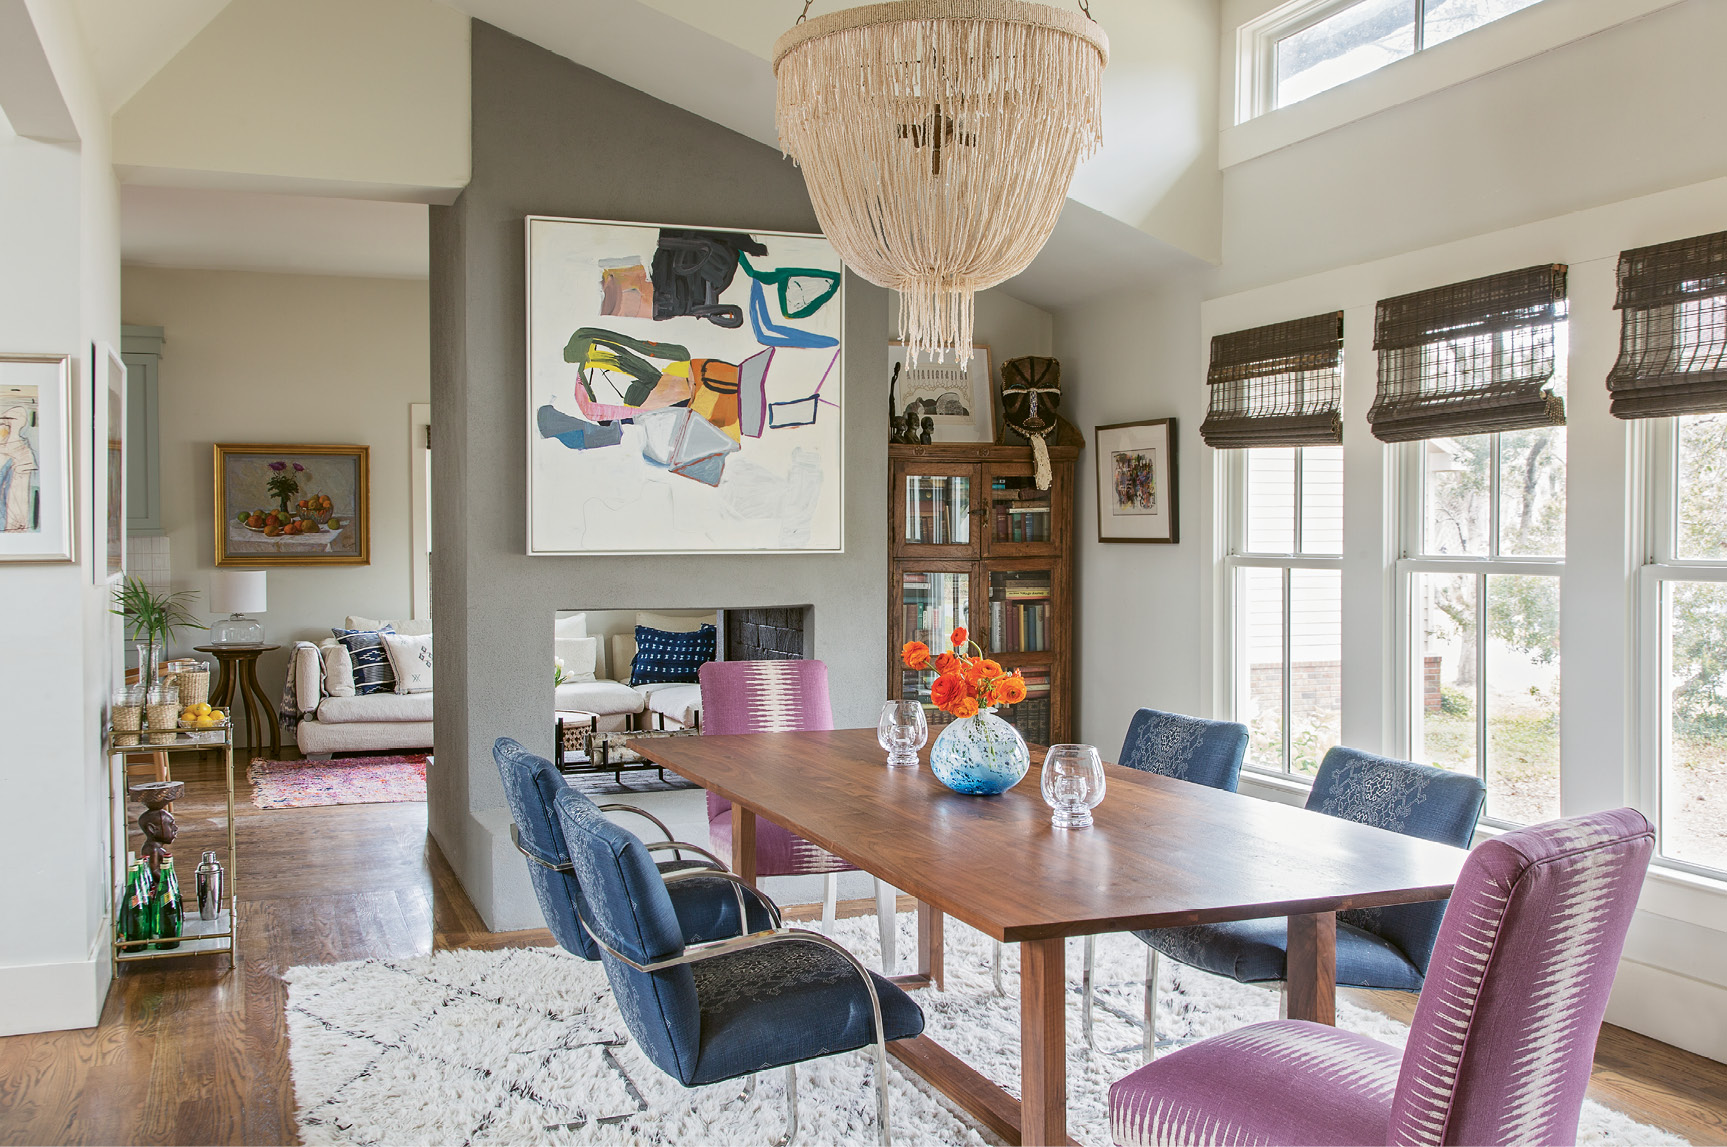 ...the slipper chairs on either end of the dining table were handed down from a friend and recovered in a fresh fabric, and the rest of the dining chairs were scored on eBay. An abstract painting by Brian Coleman adds a dash of color and texture above the wraparound fireplace, which was stuccoed during the renovation for a more modern, streamlined look.